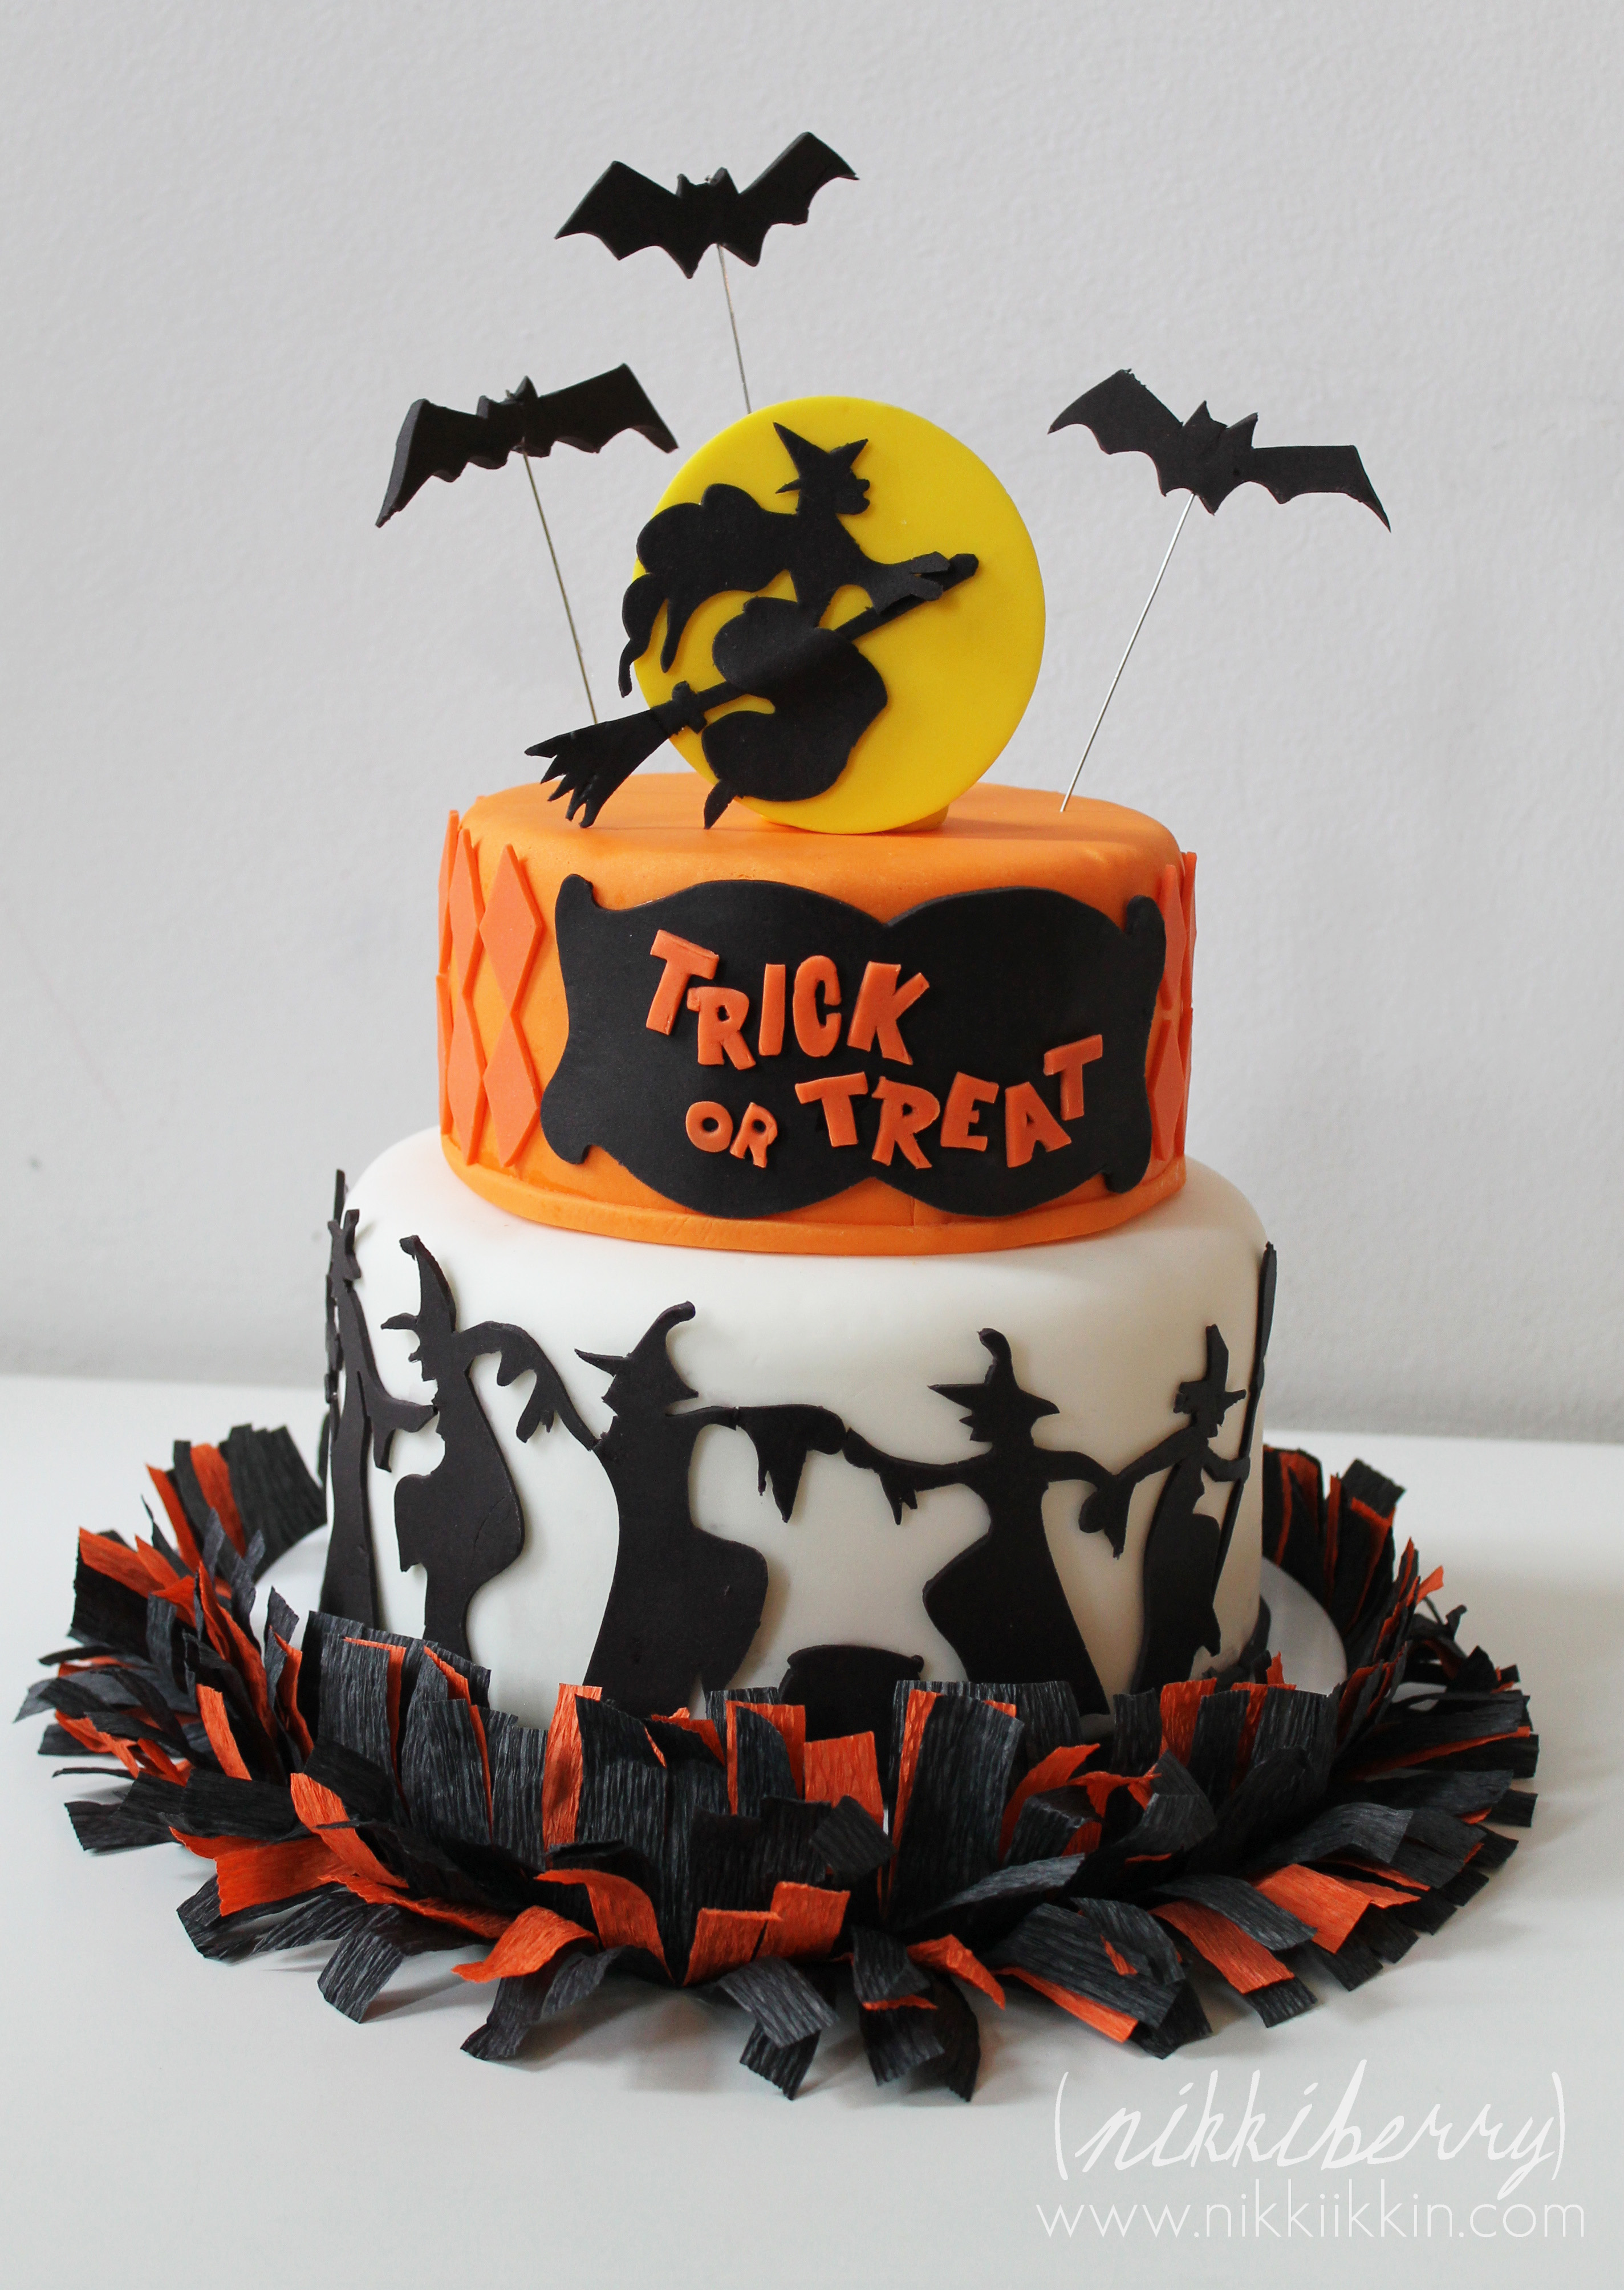 Enjoyable Halloween Cakes Decoration Ideas Little Birthday Cakes Funny Birthday Cards Online Barepcheapnameinfo